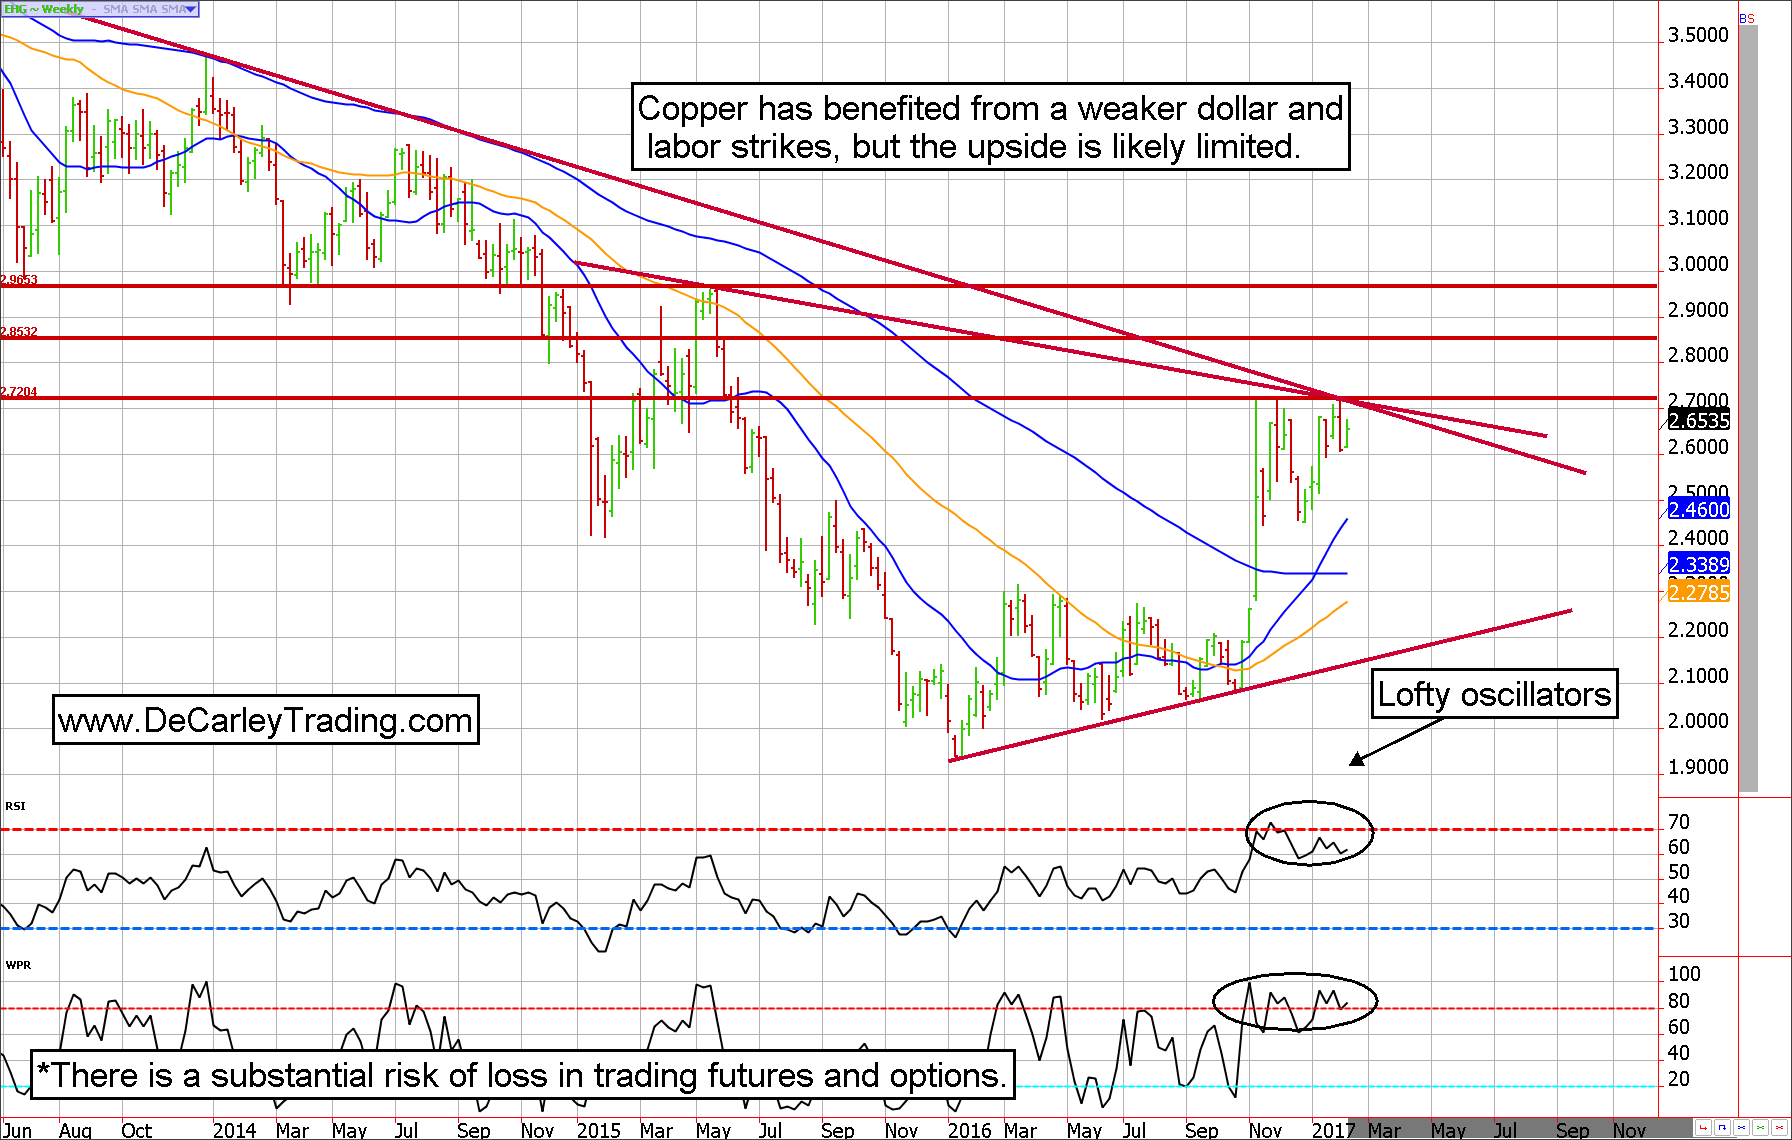 Copper Futures Technically Overbought